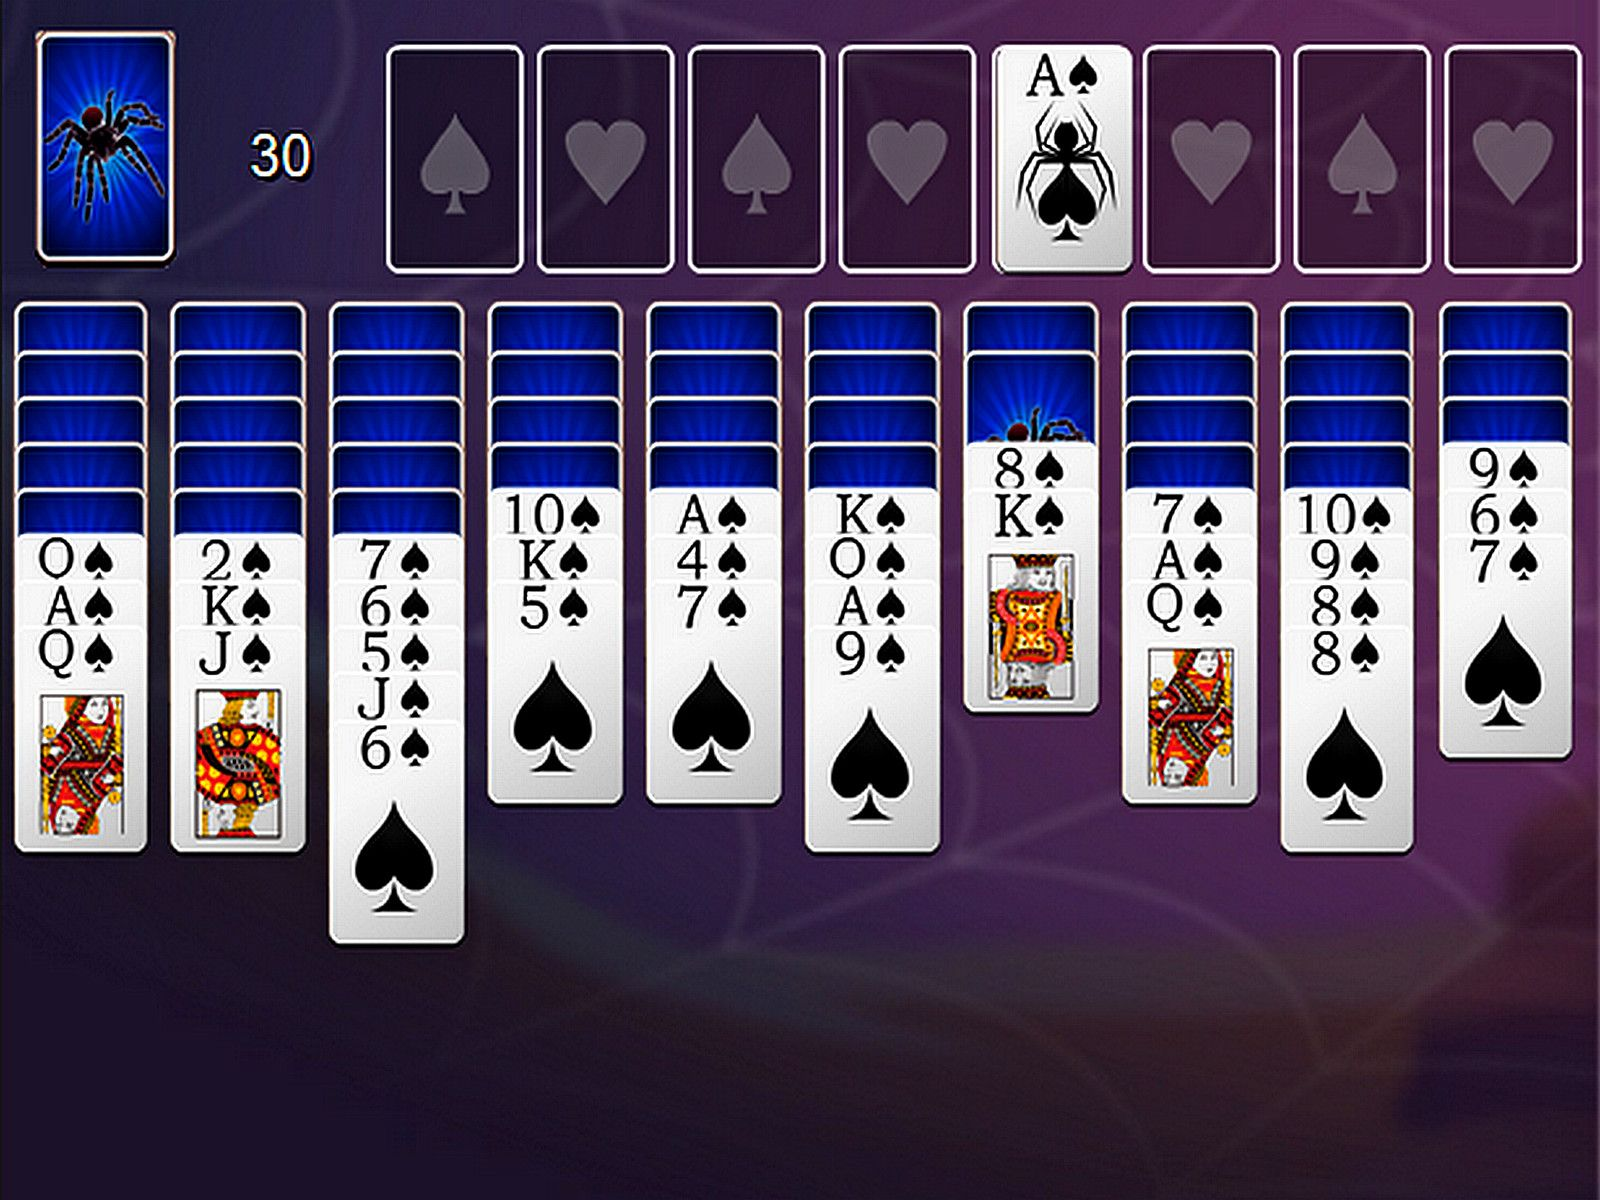 Spider Solitaire 1 Suit Make sequences of cards from King